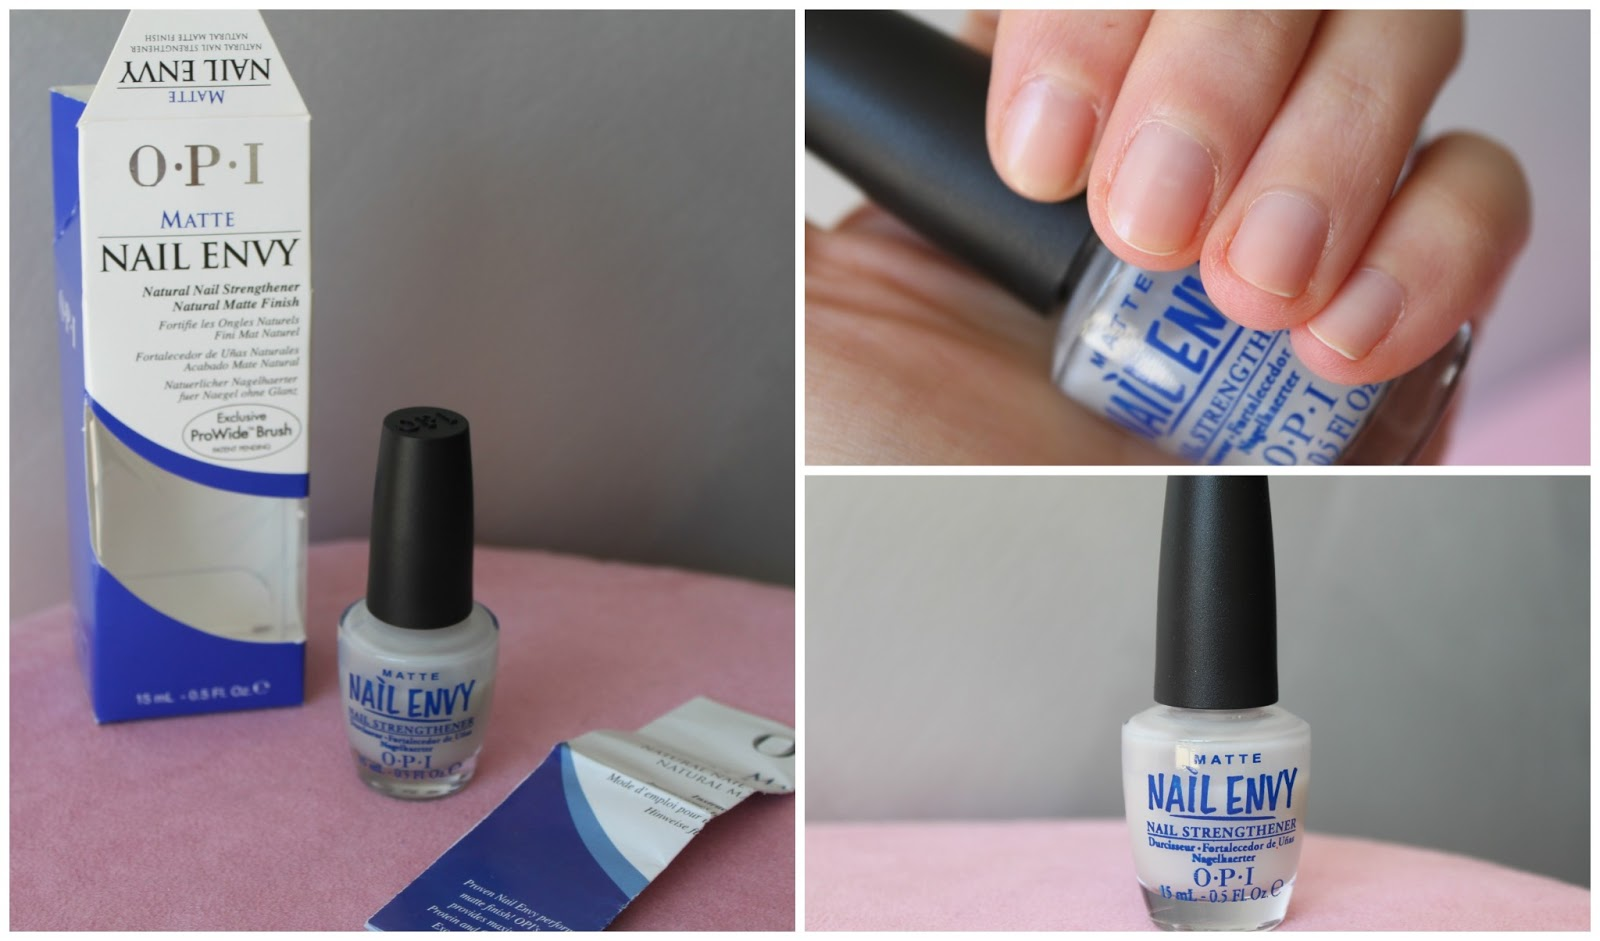 Australian Beauty Review: Nail Polish of the week: OPI Matte Nail Envy